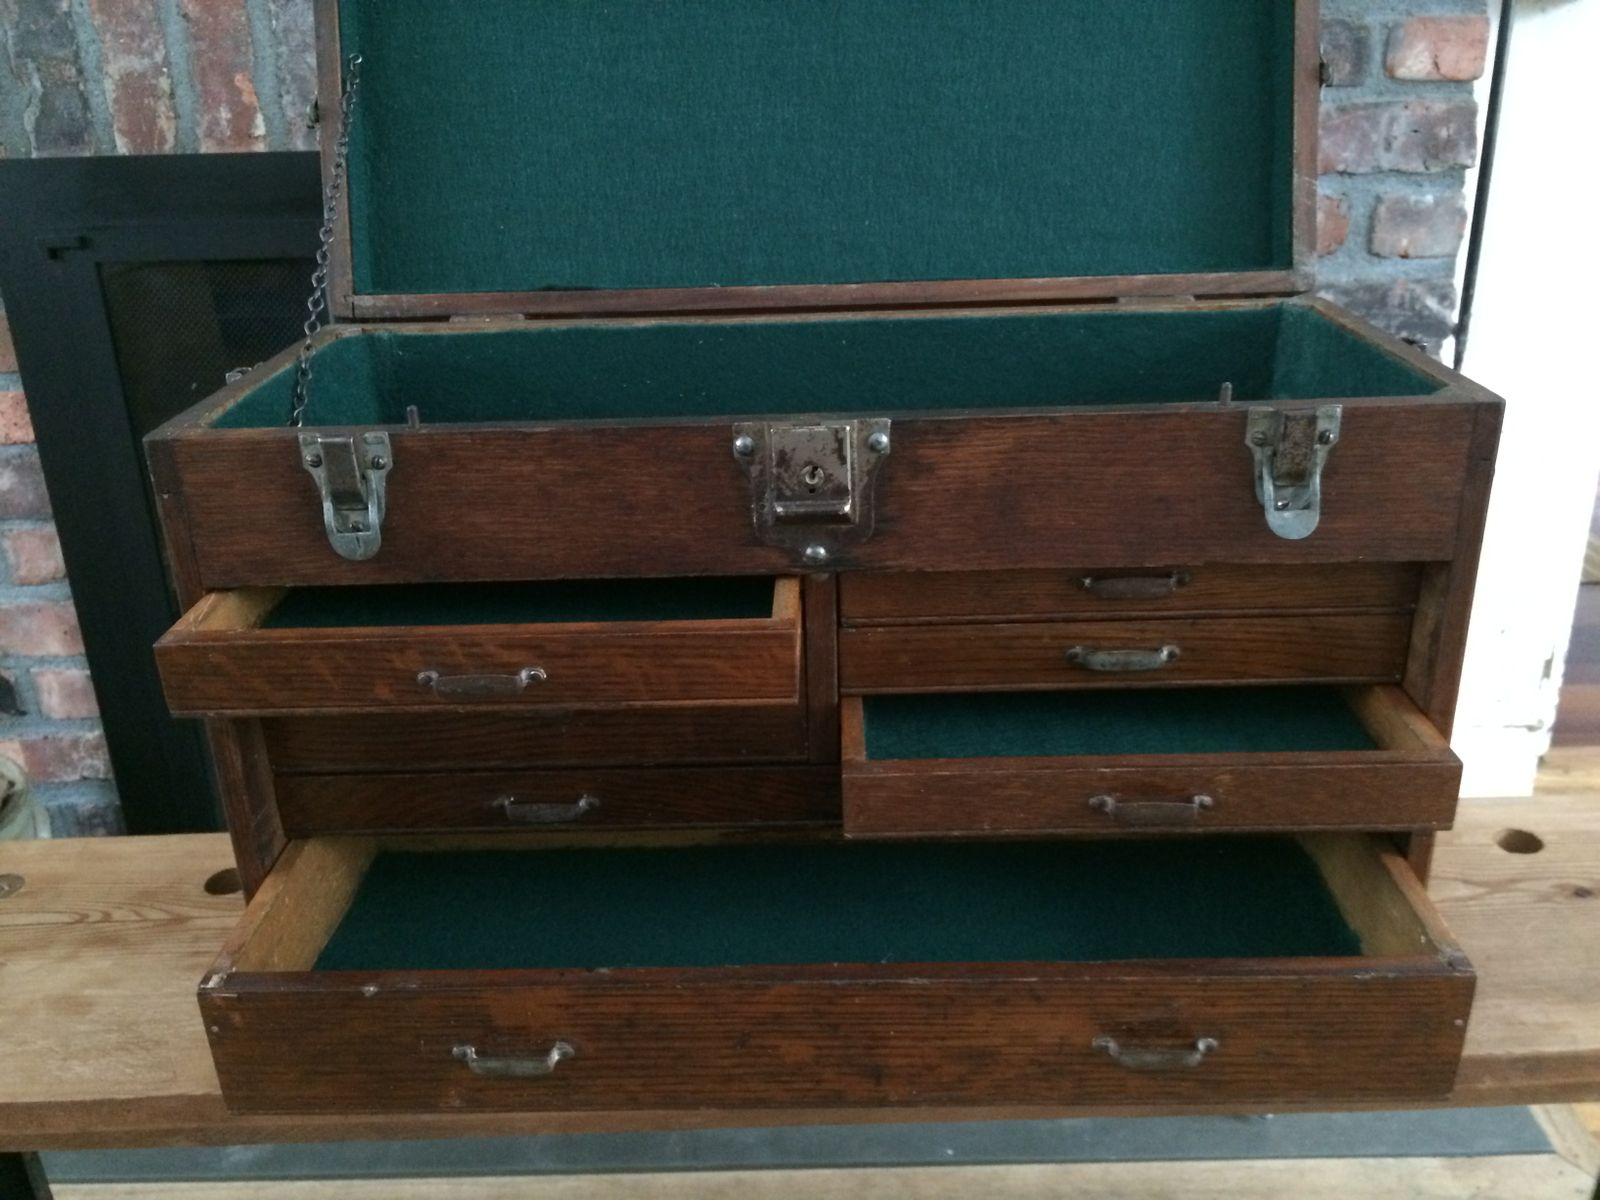 Hand Crafted Vintage Industrial Machinist Tool Box  Jewelry Box by MKarl LLC  CustomMadecom